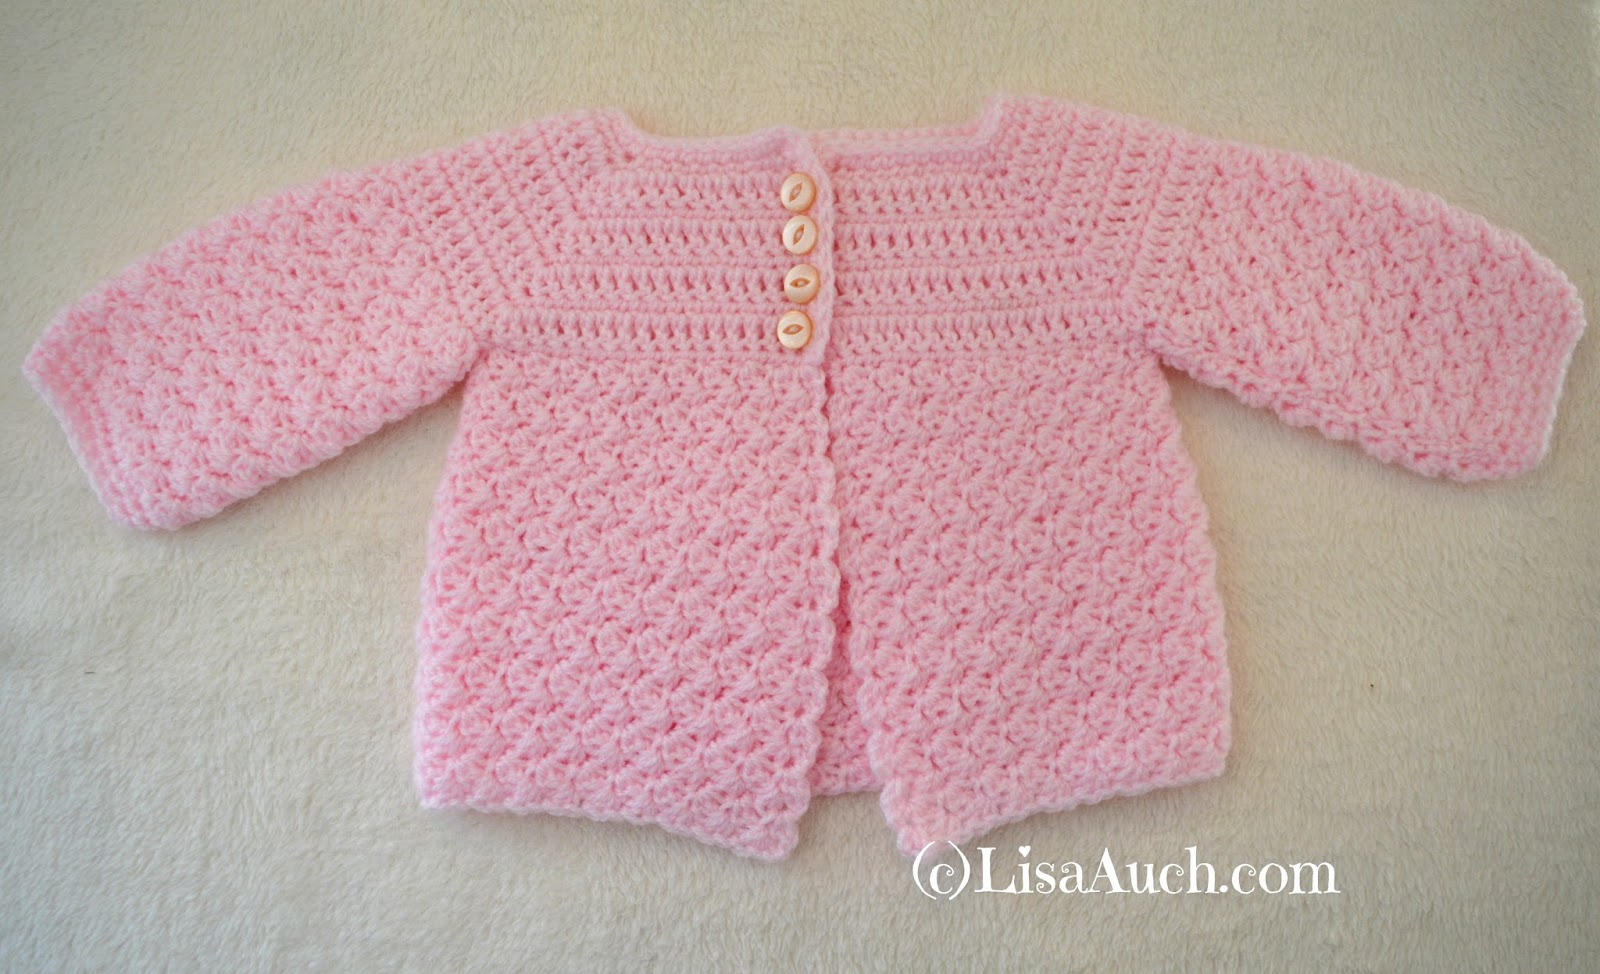 Easy Crochet Baby Sweater Pattern Free : Crochet Baby Cardigan Easy Free Pattern Free Crochet ...